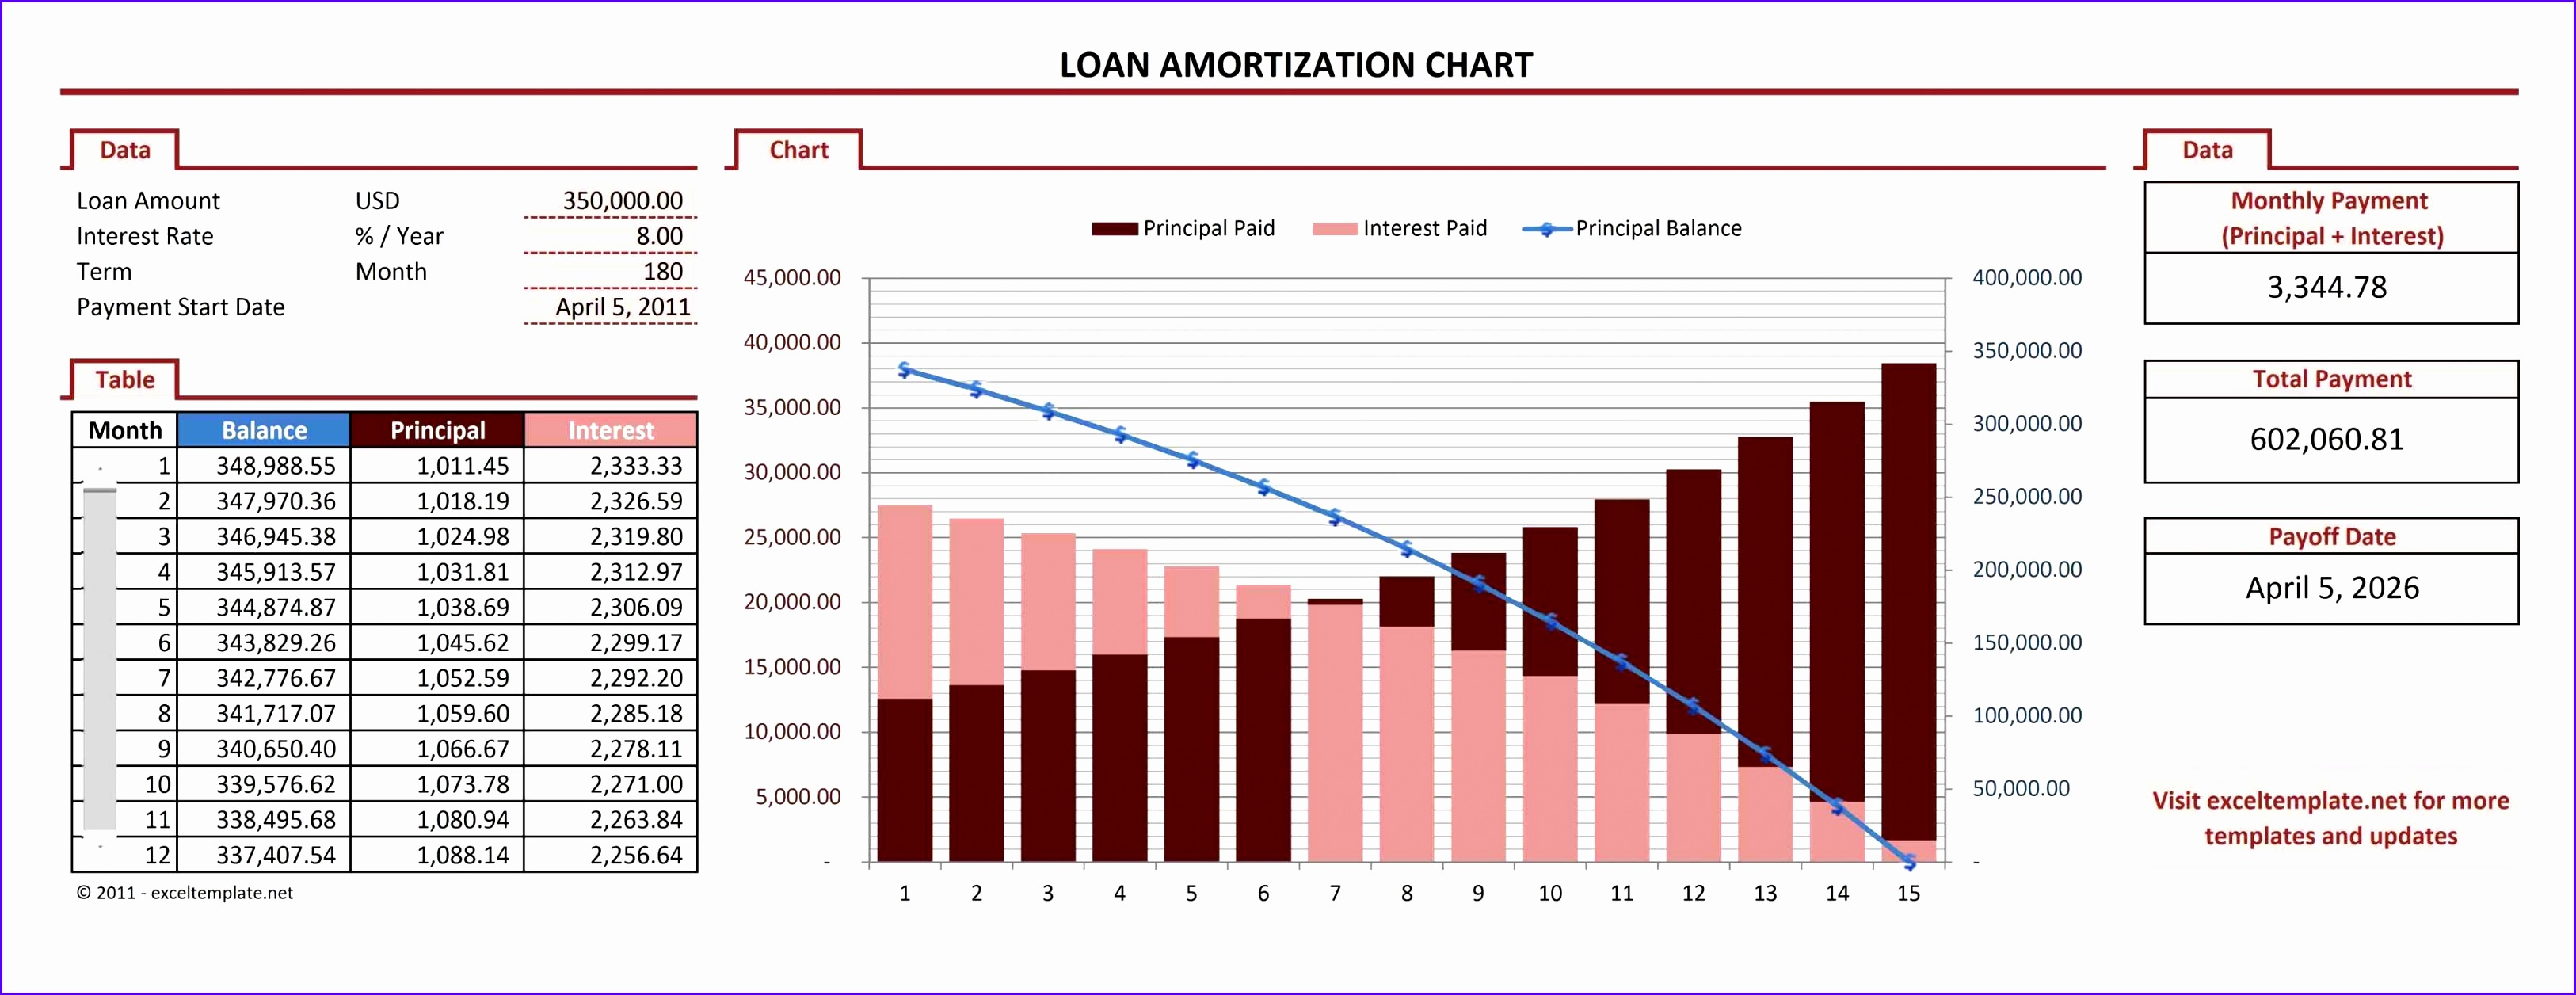 Examples excel amortization schedule template yesbc fresh loan example excel amortization schedule template c0ycf luxury spreadsheet template how to prepare amortization schedule in 35741366 maxwellsz